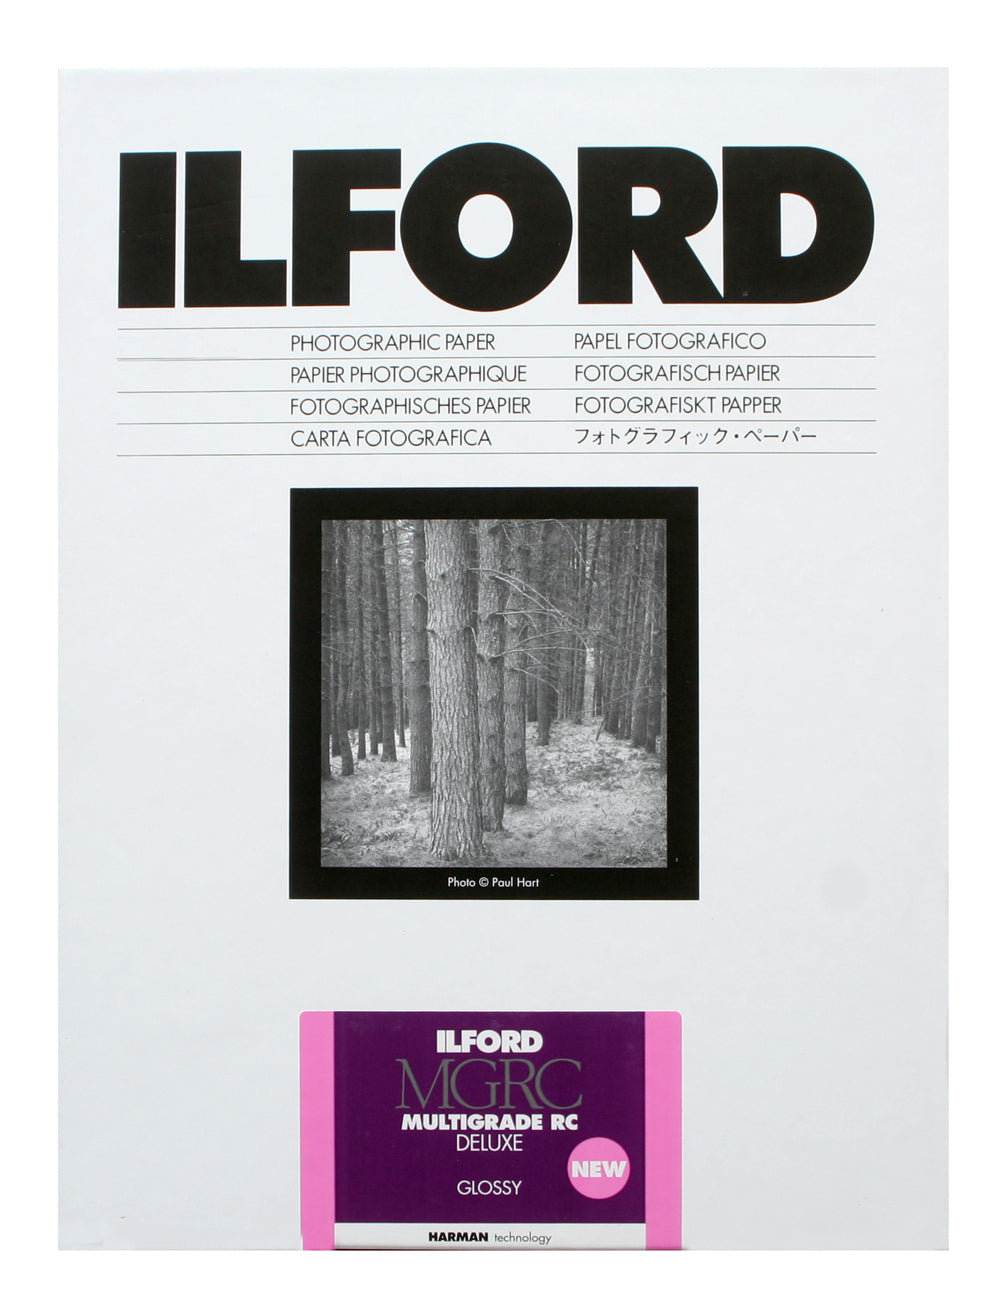 Ilford MGRC 5th Generation Deluxe Gloss